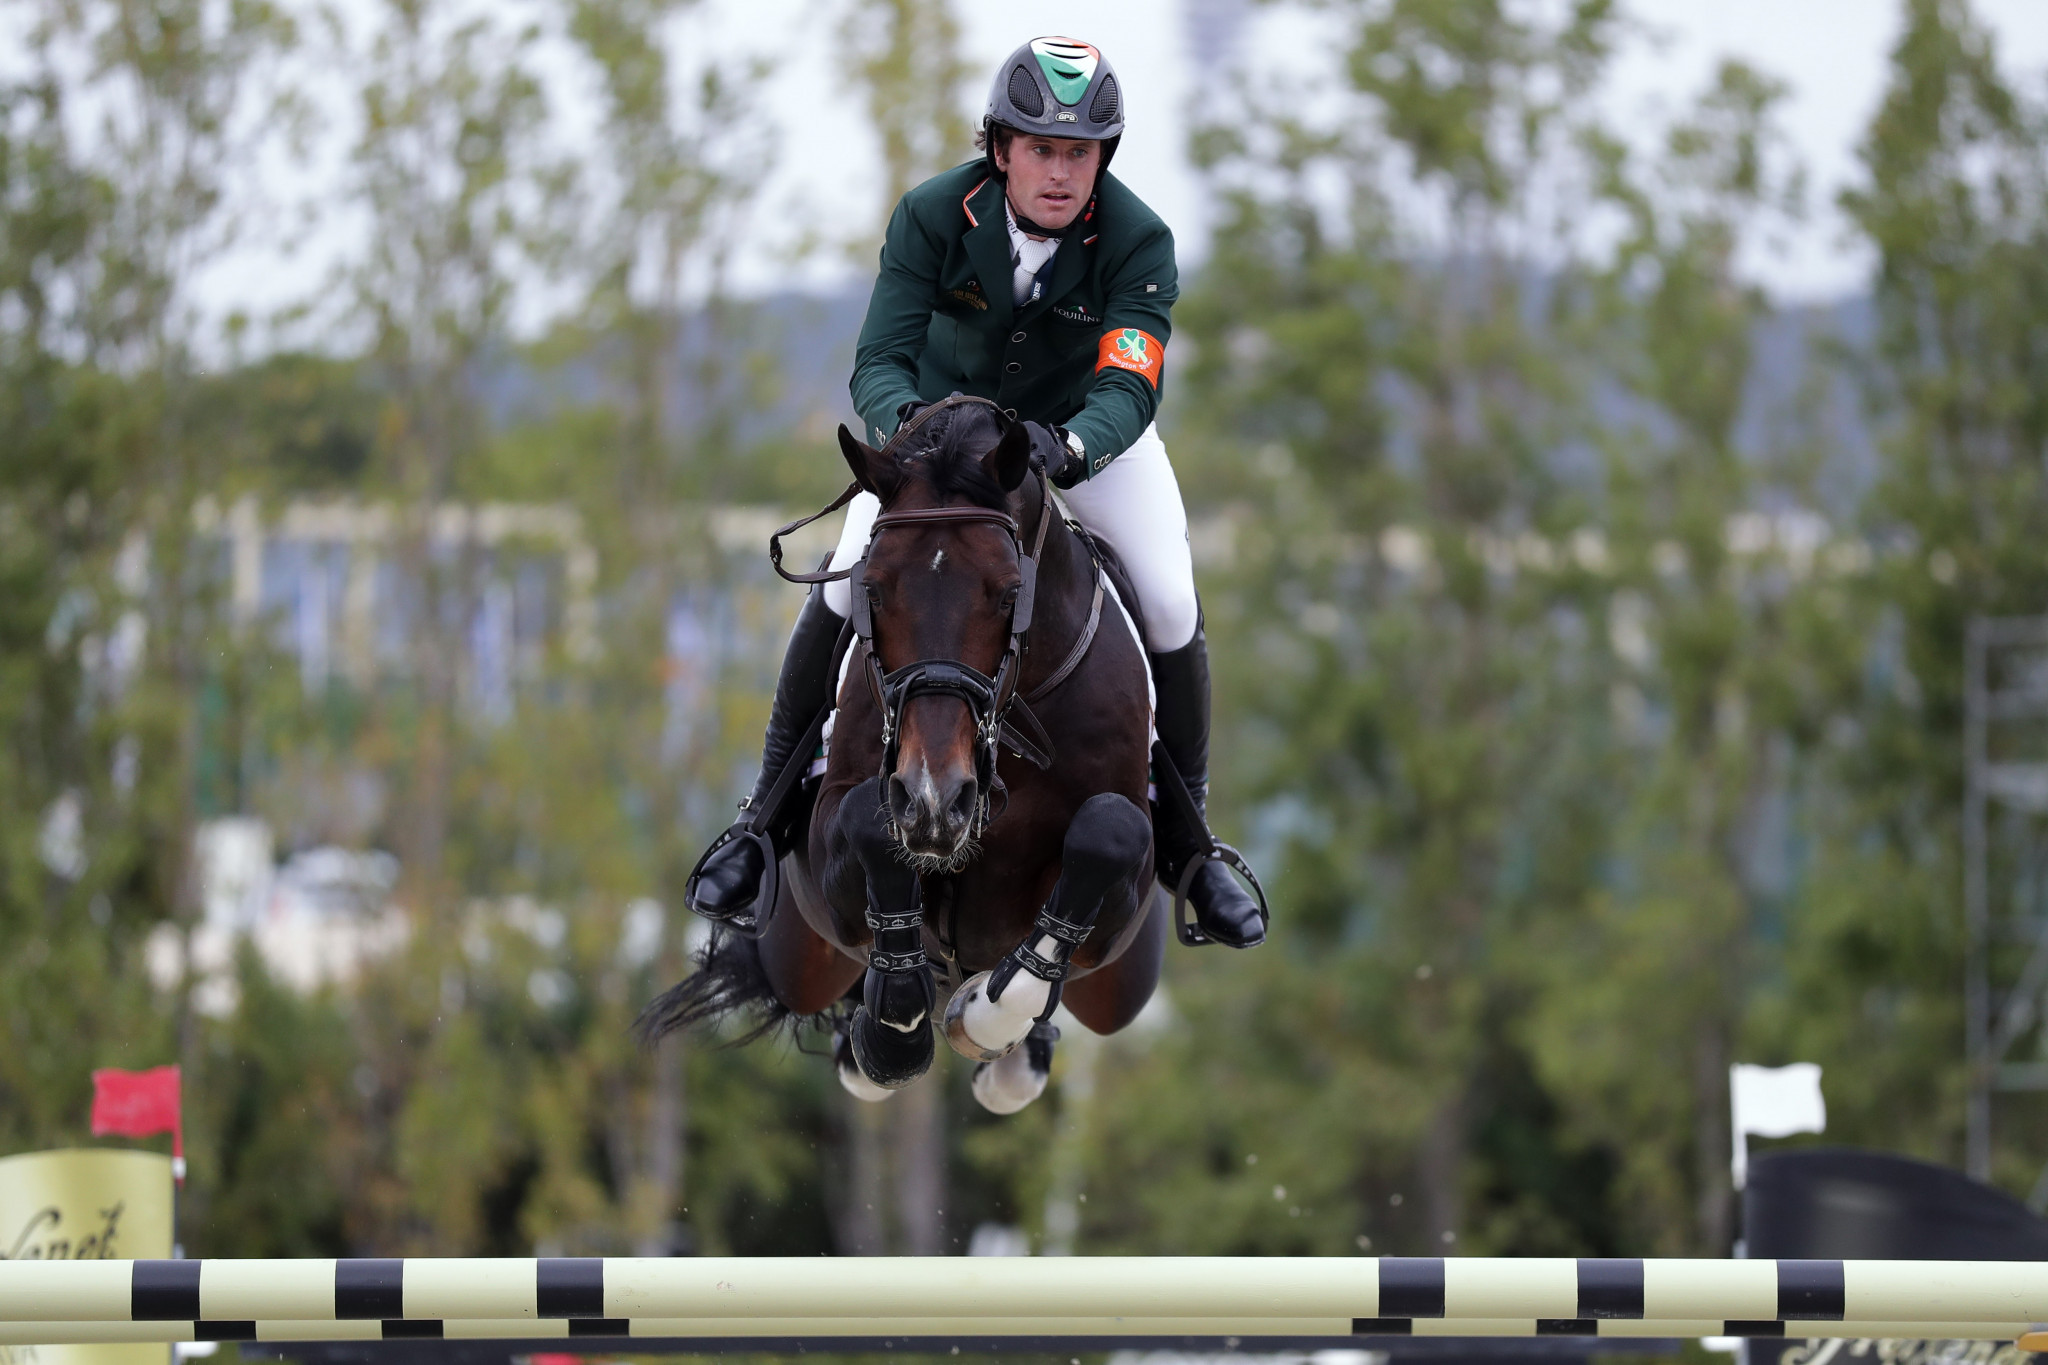 Ireland's Kenny wins GCT and GCL double in Monaco